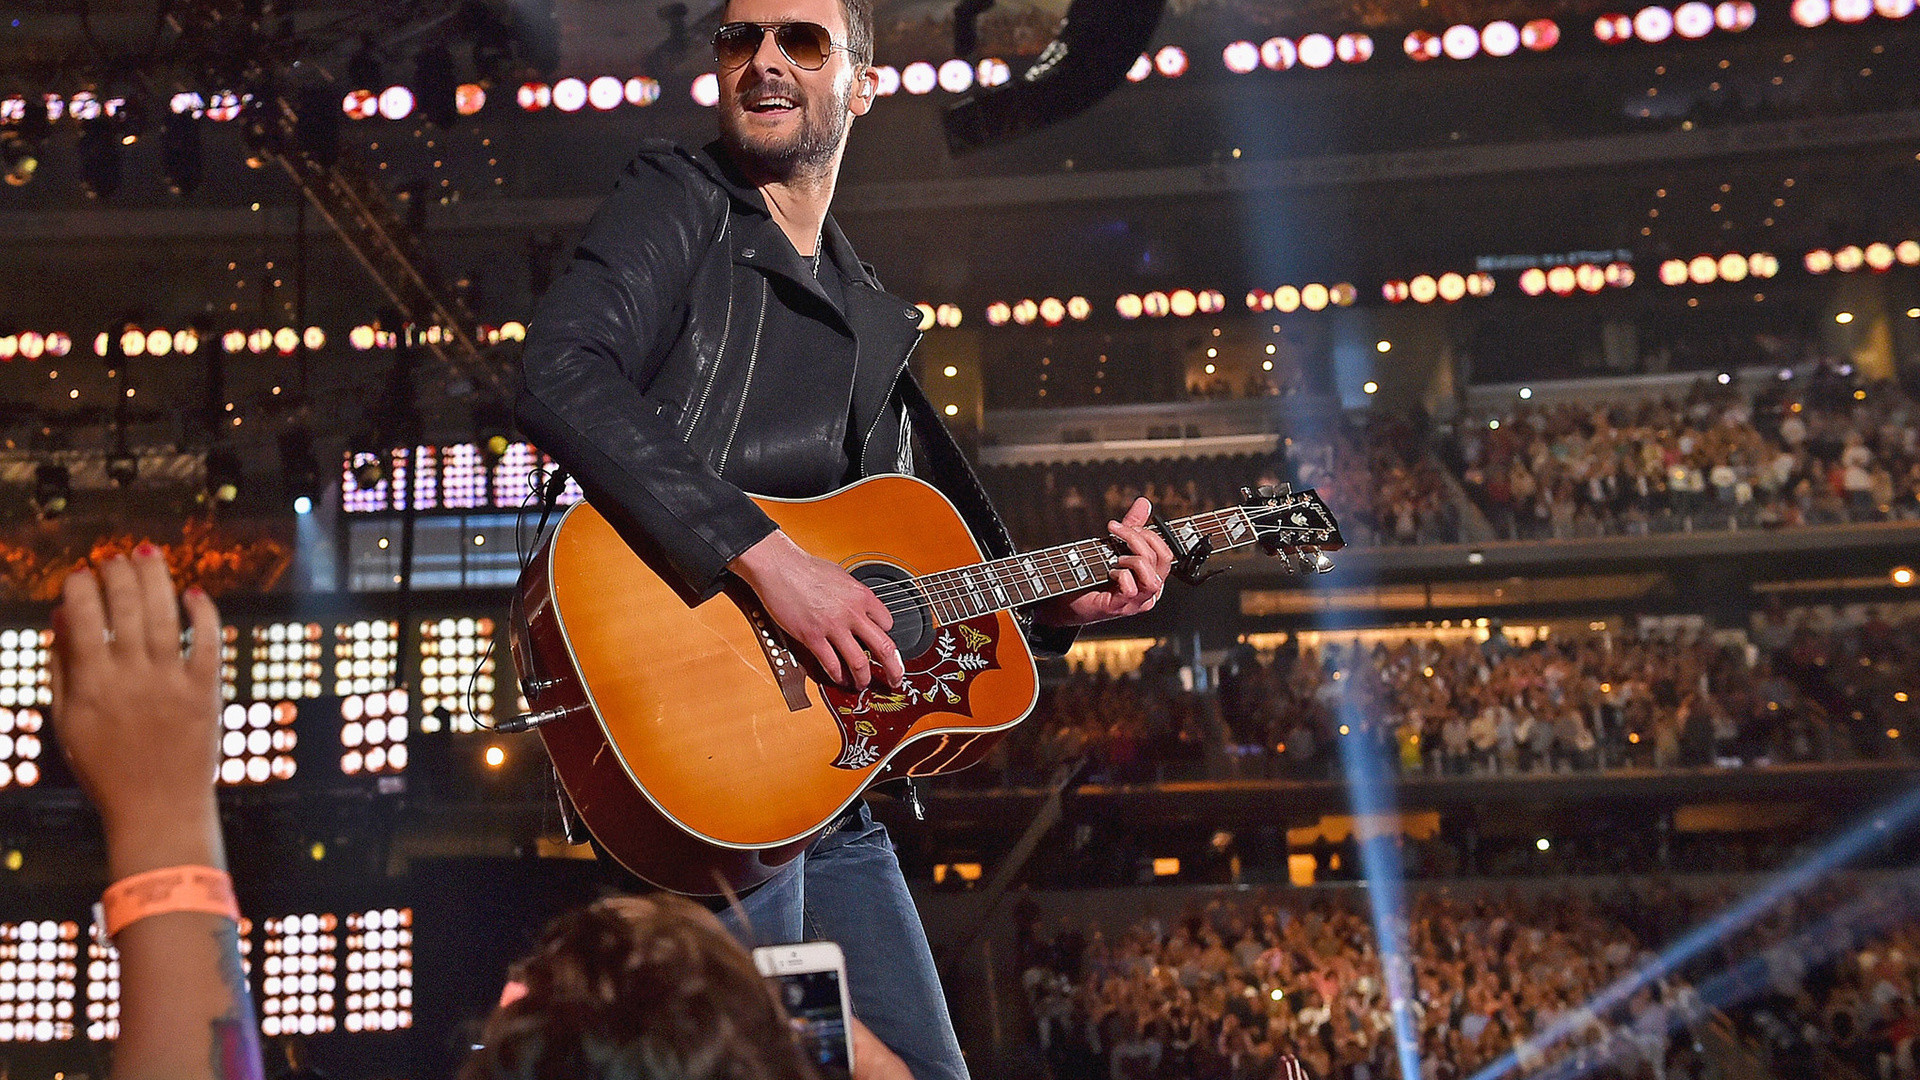 Eric Church Country Music Guitar Concert, Music, Country, Country Pop,  Guitar,